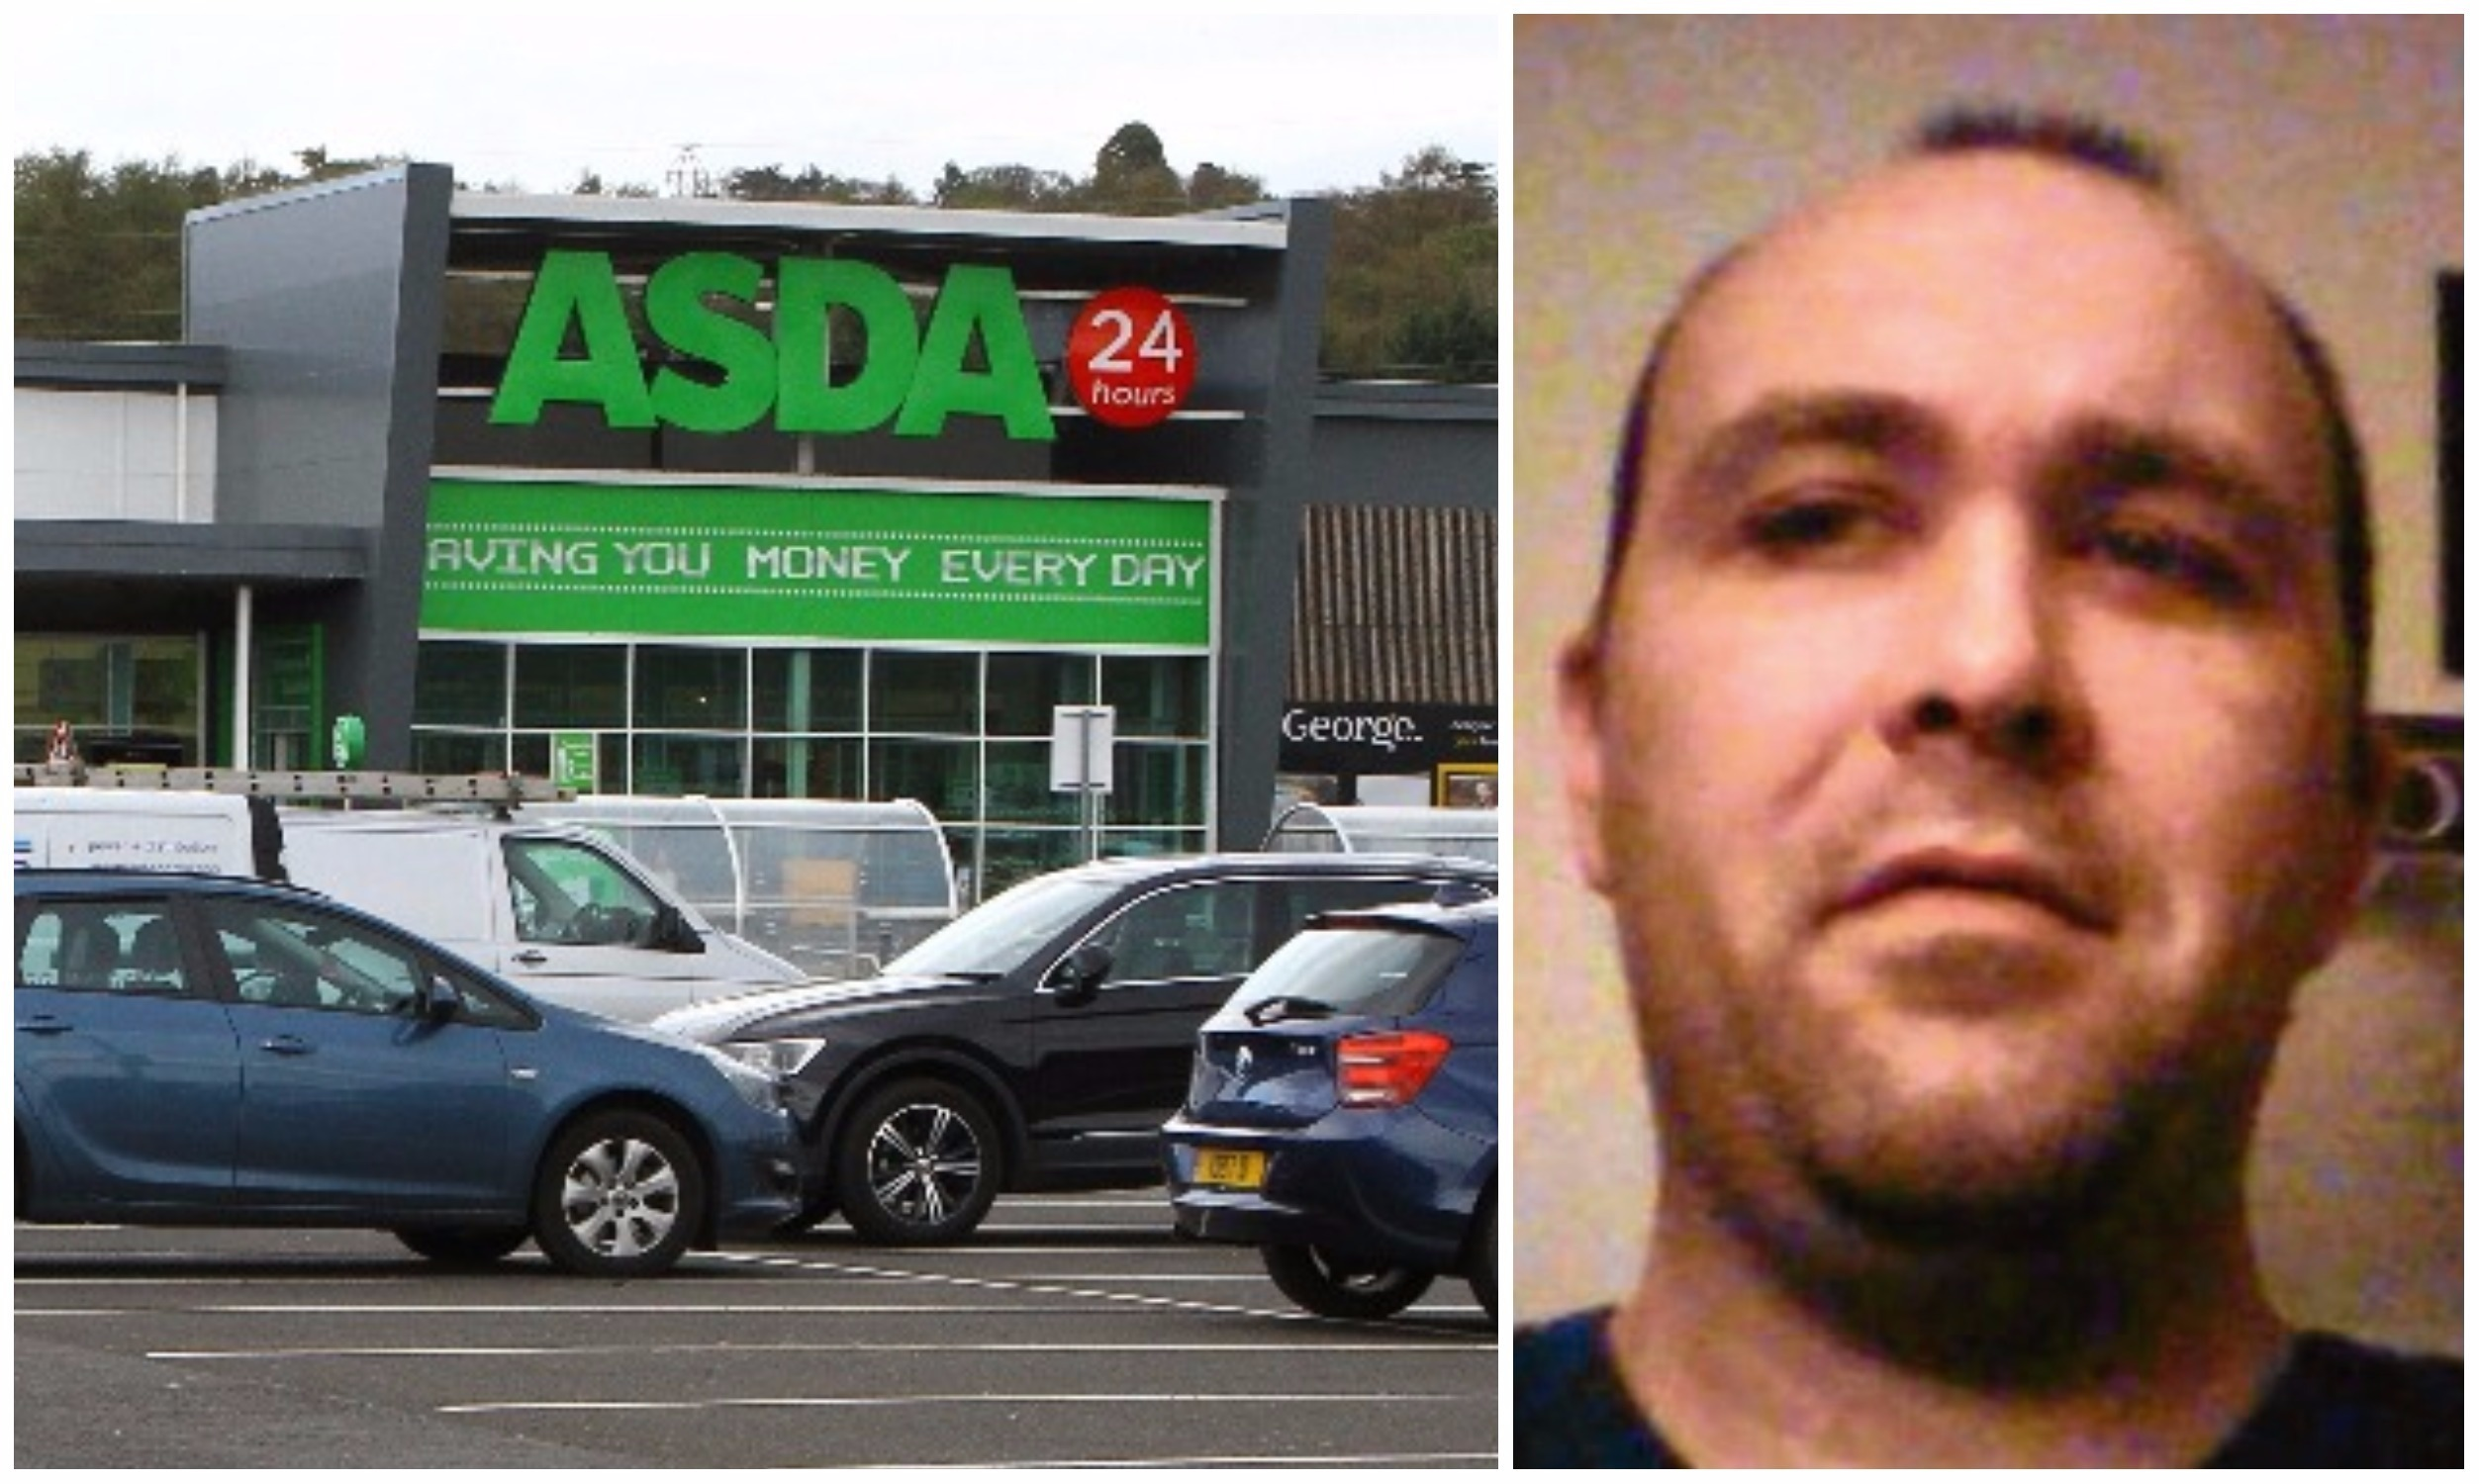 Christopher Traynor threatened staff at Asda Myrekirk